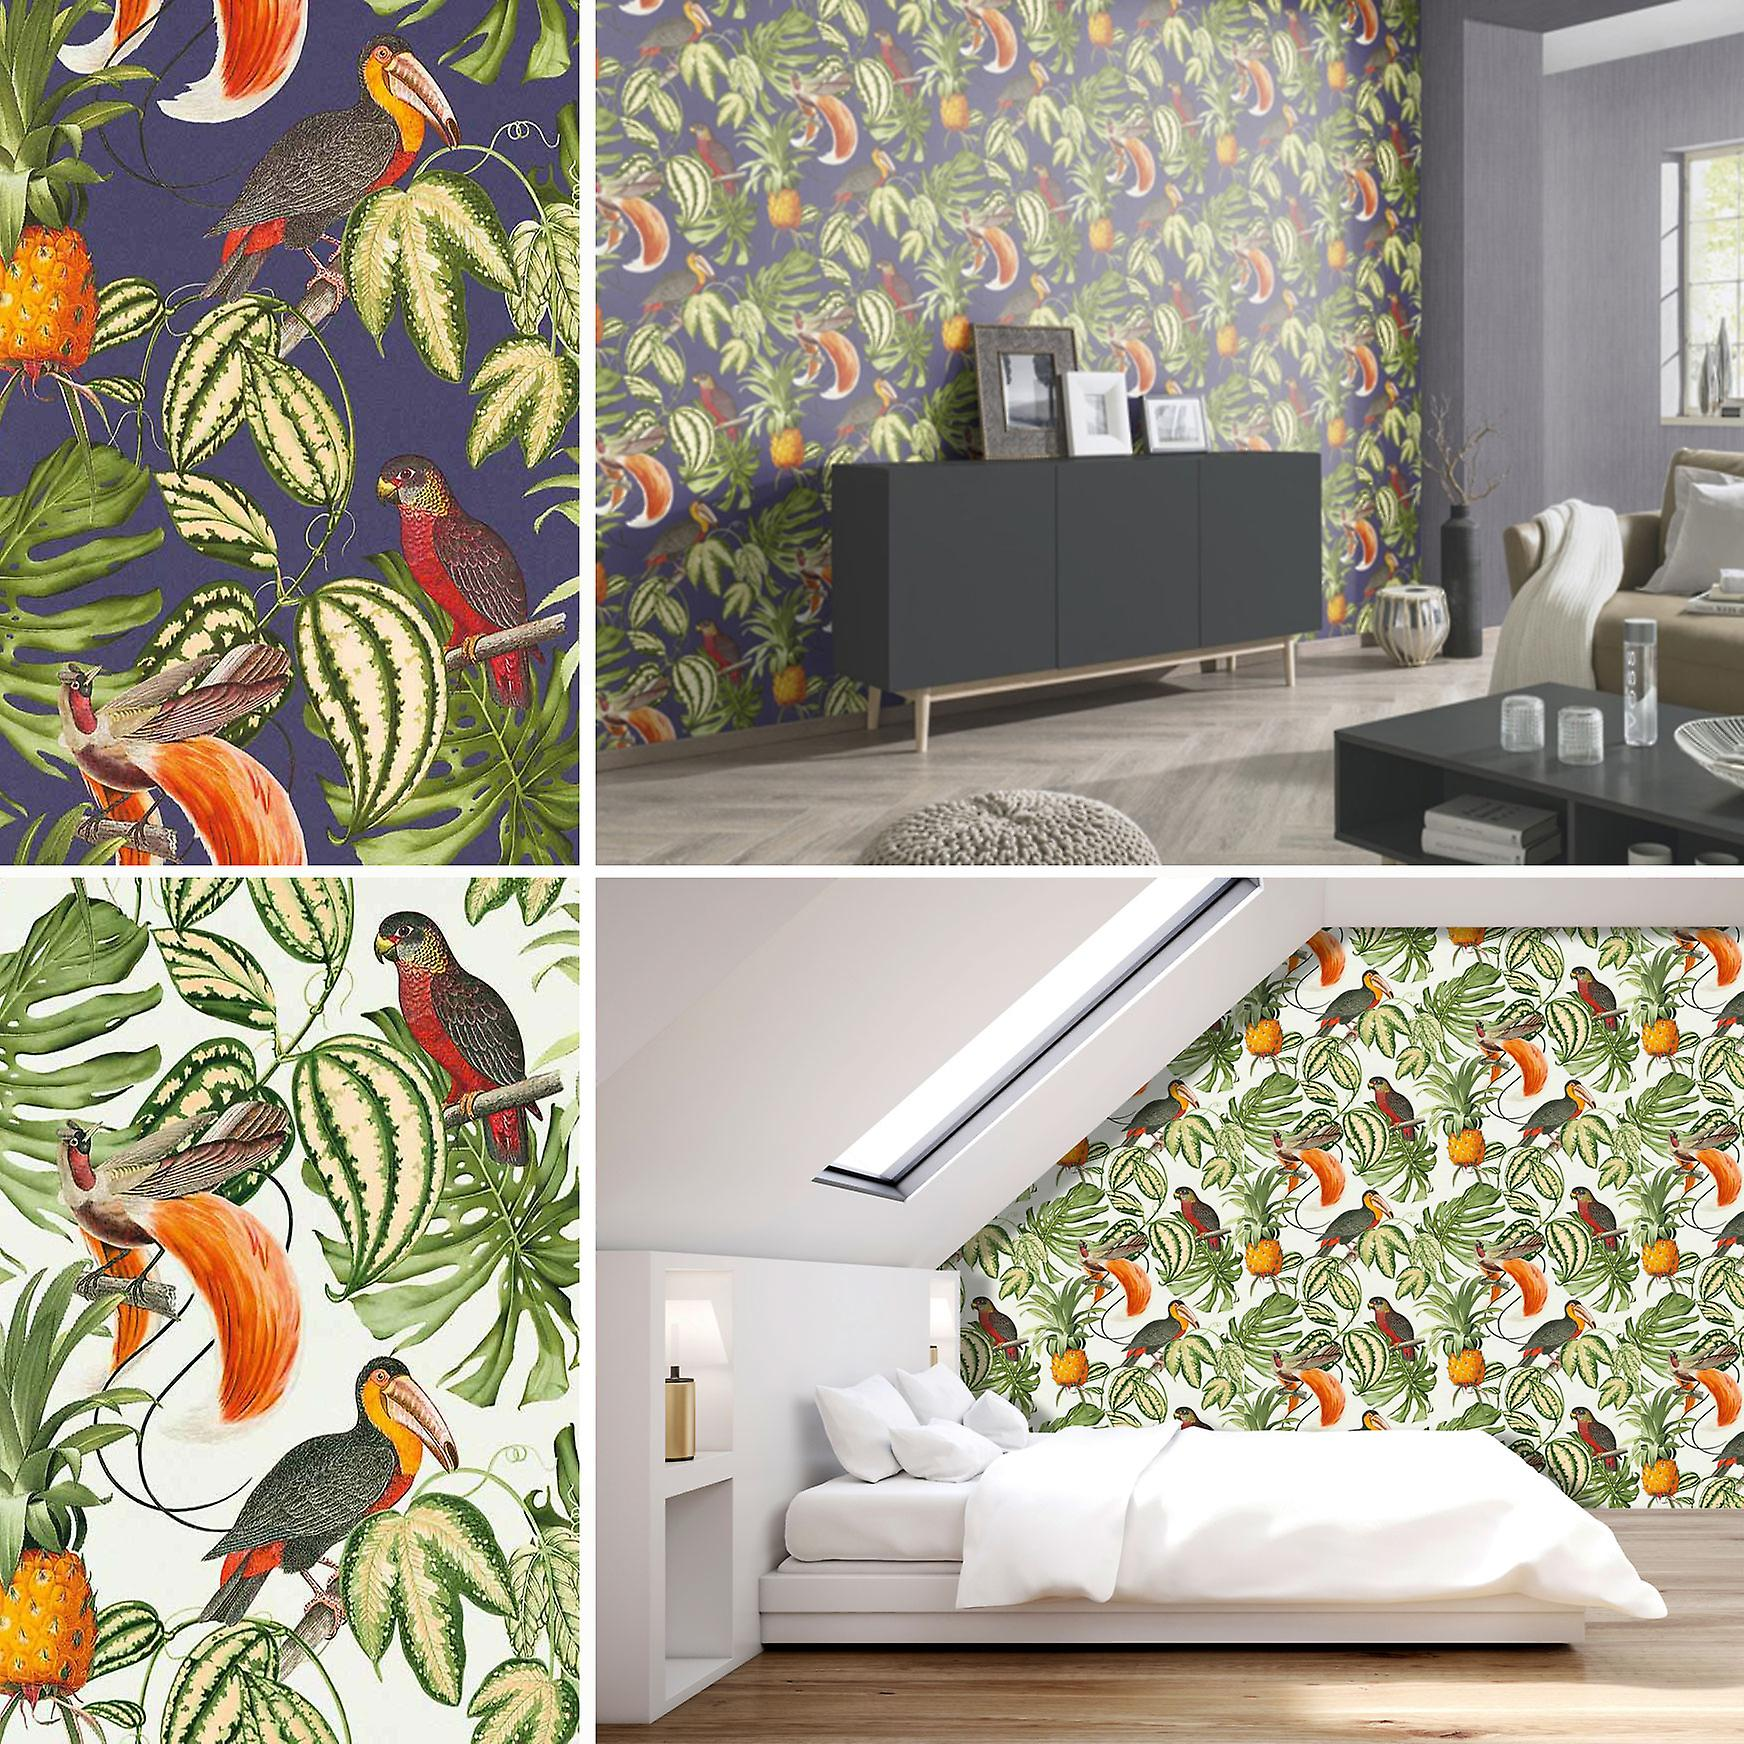 papier peint paradisio perroquet toucan tropical arbres exotiques fleur vinyle erismann fruugo. Black Bedroom Furniture Sets. Home Design Ideas